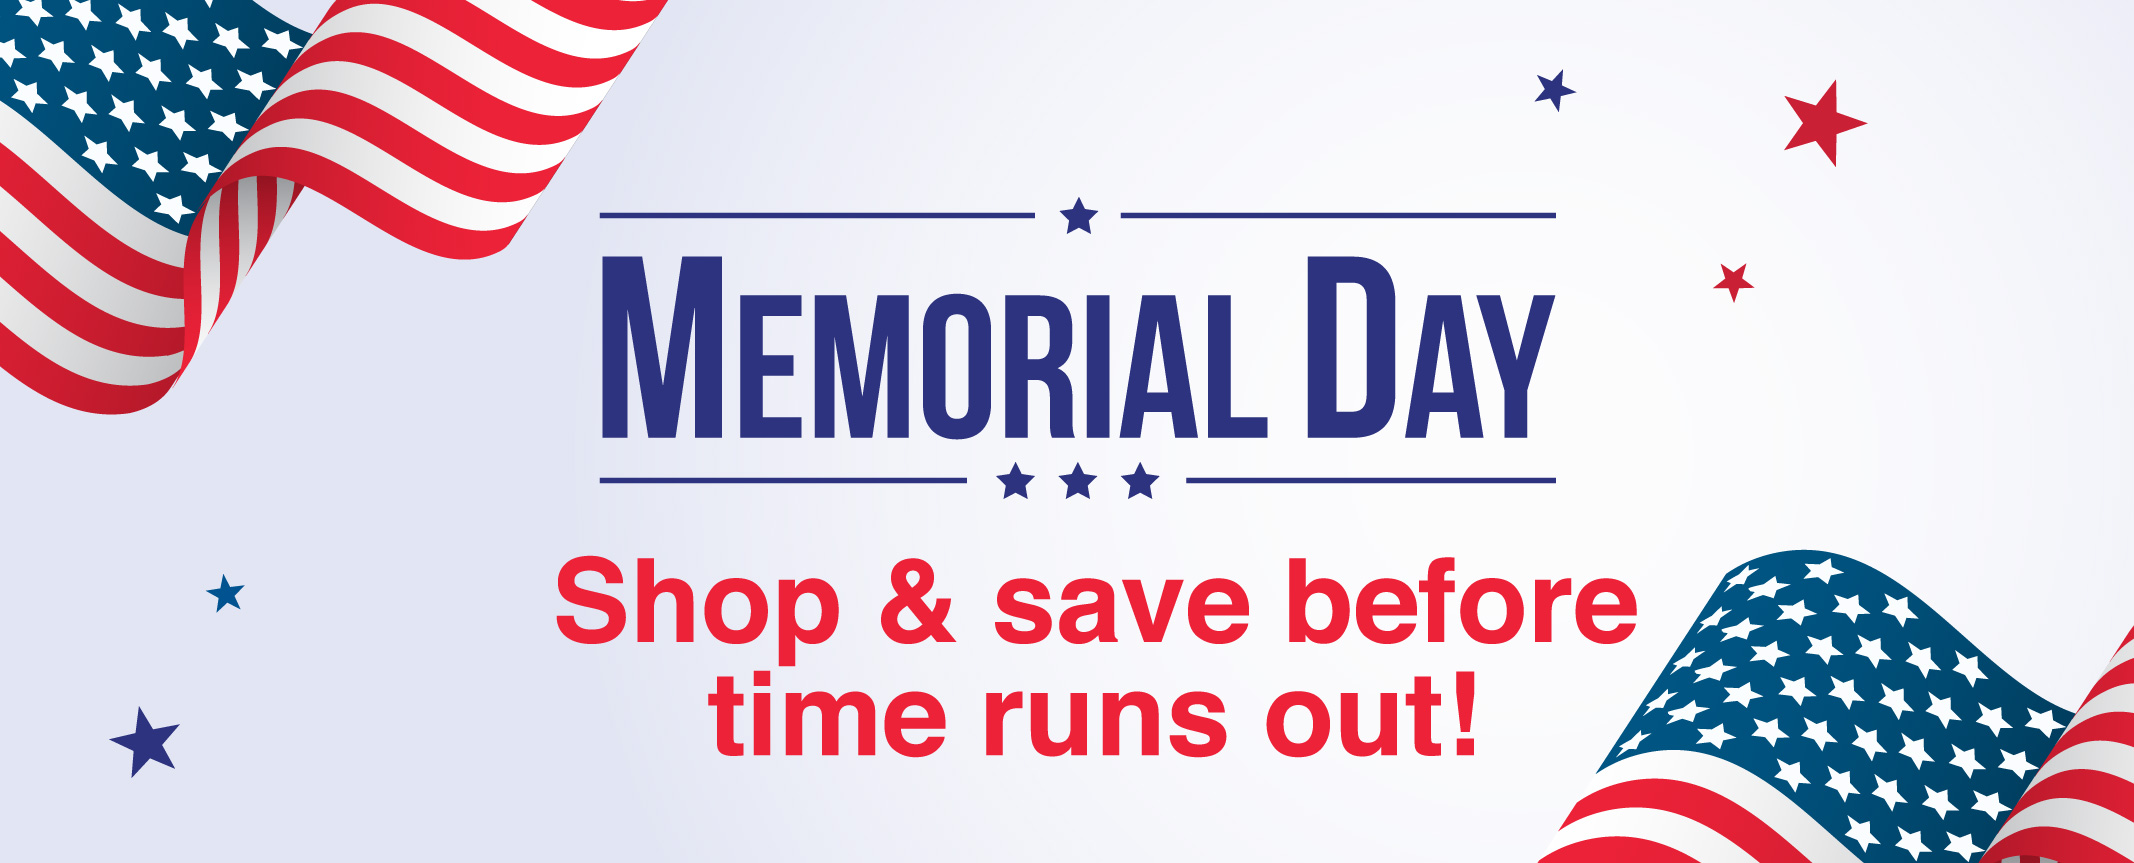 Memorial Day Savings - Shop Now - Limited Time